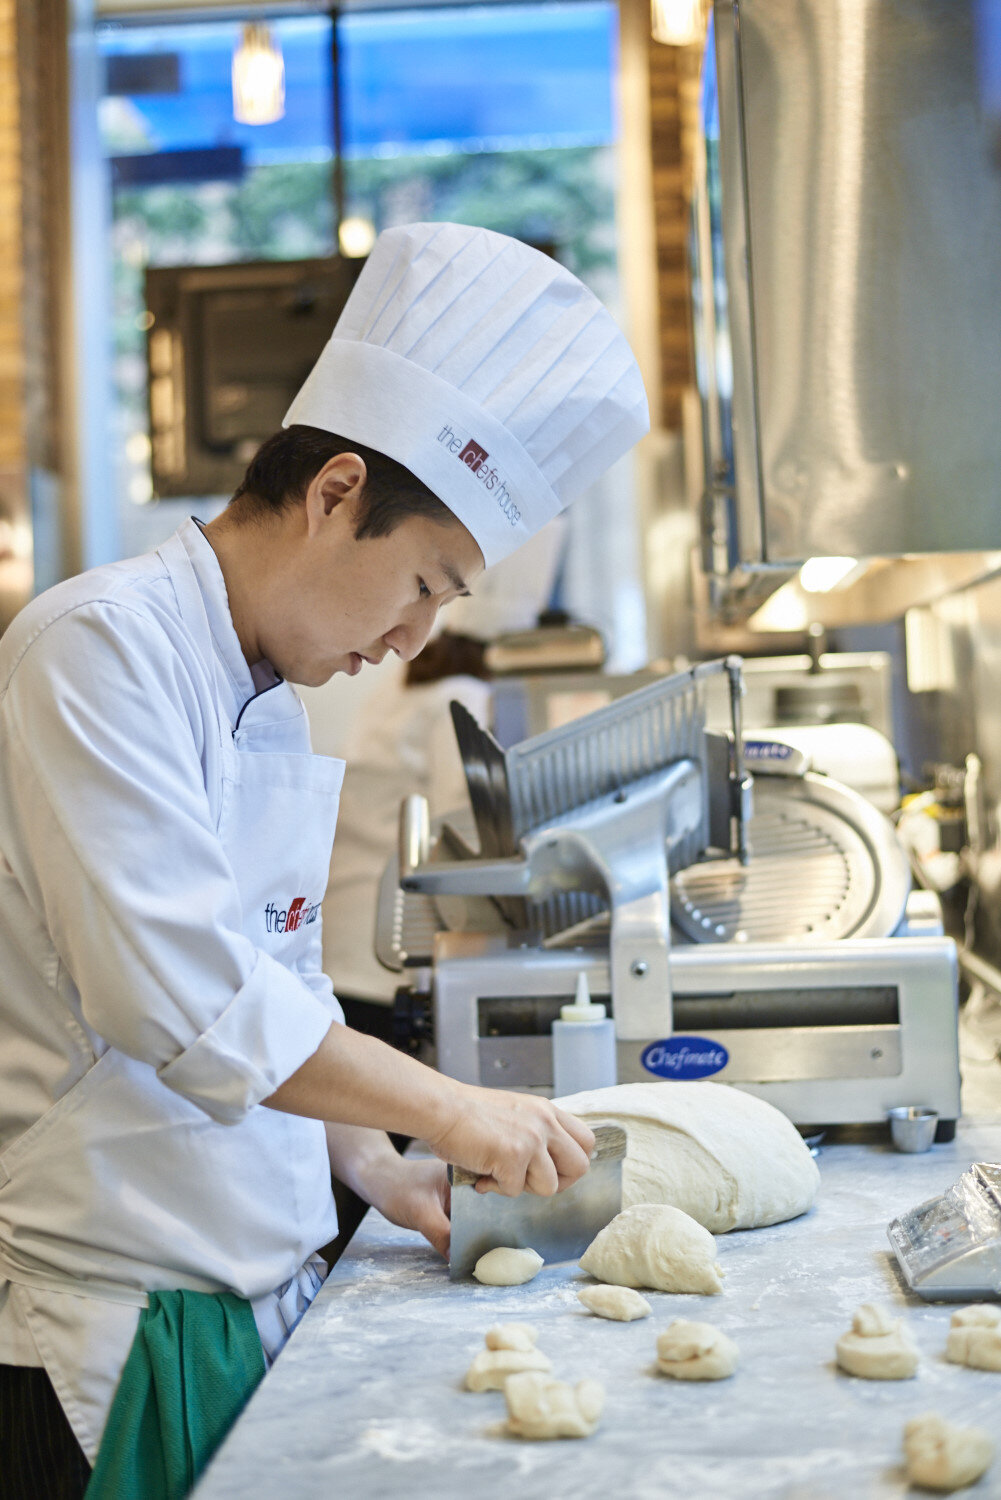 Culinary students work in the Restaurant and Café's state-of-the-art kitchens, creating delicious food for guests